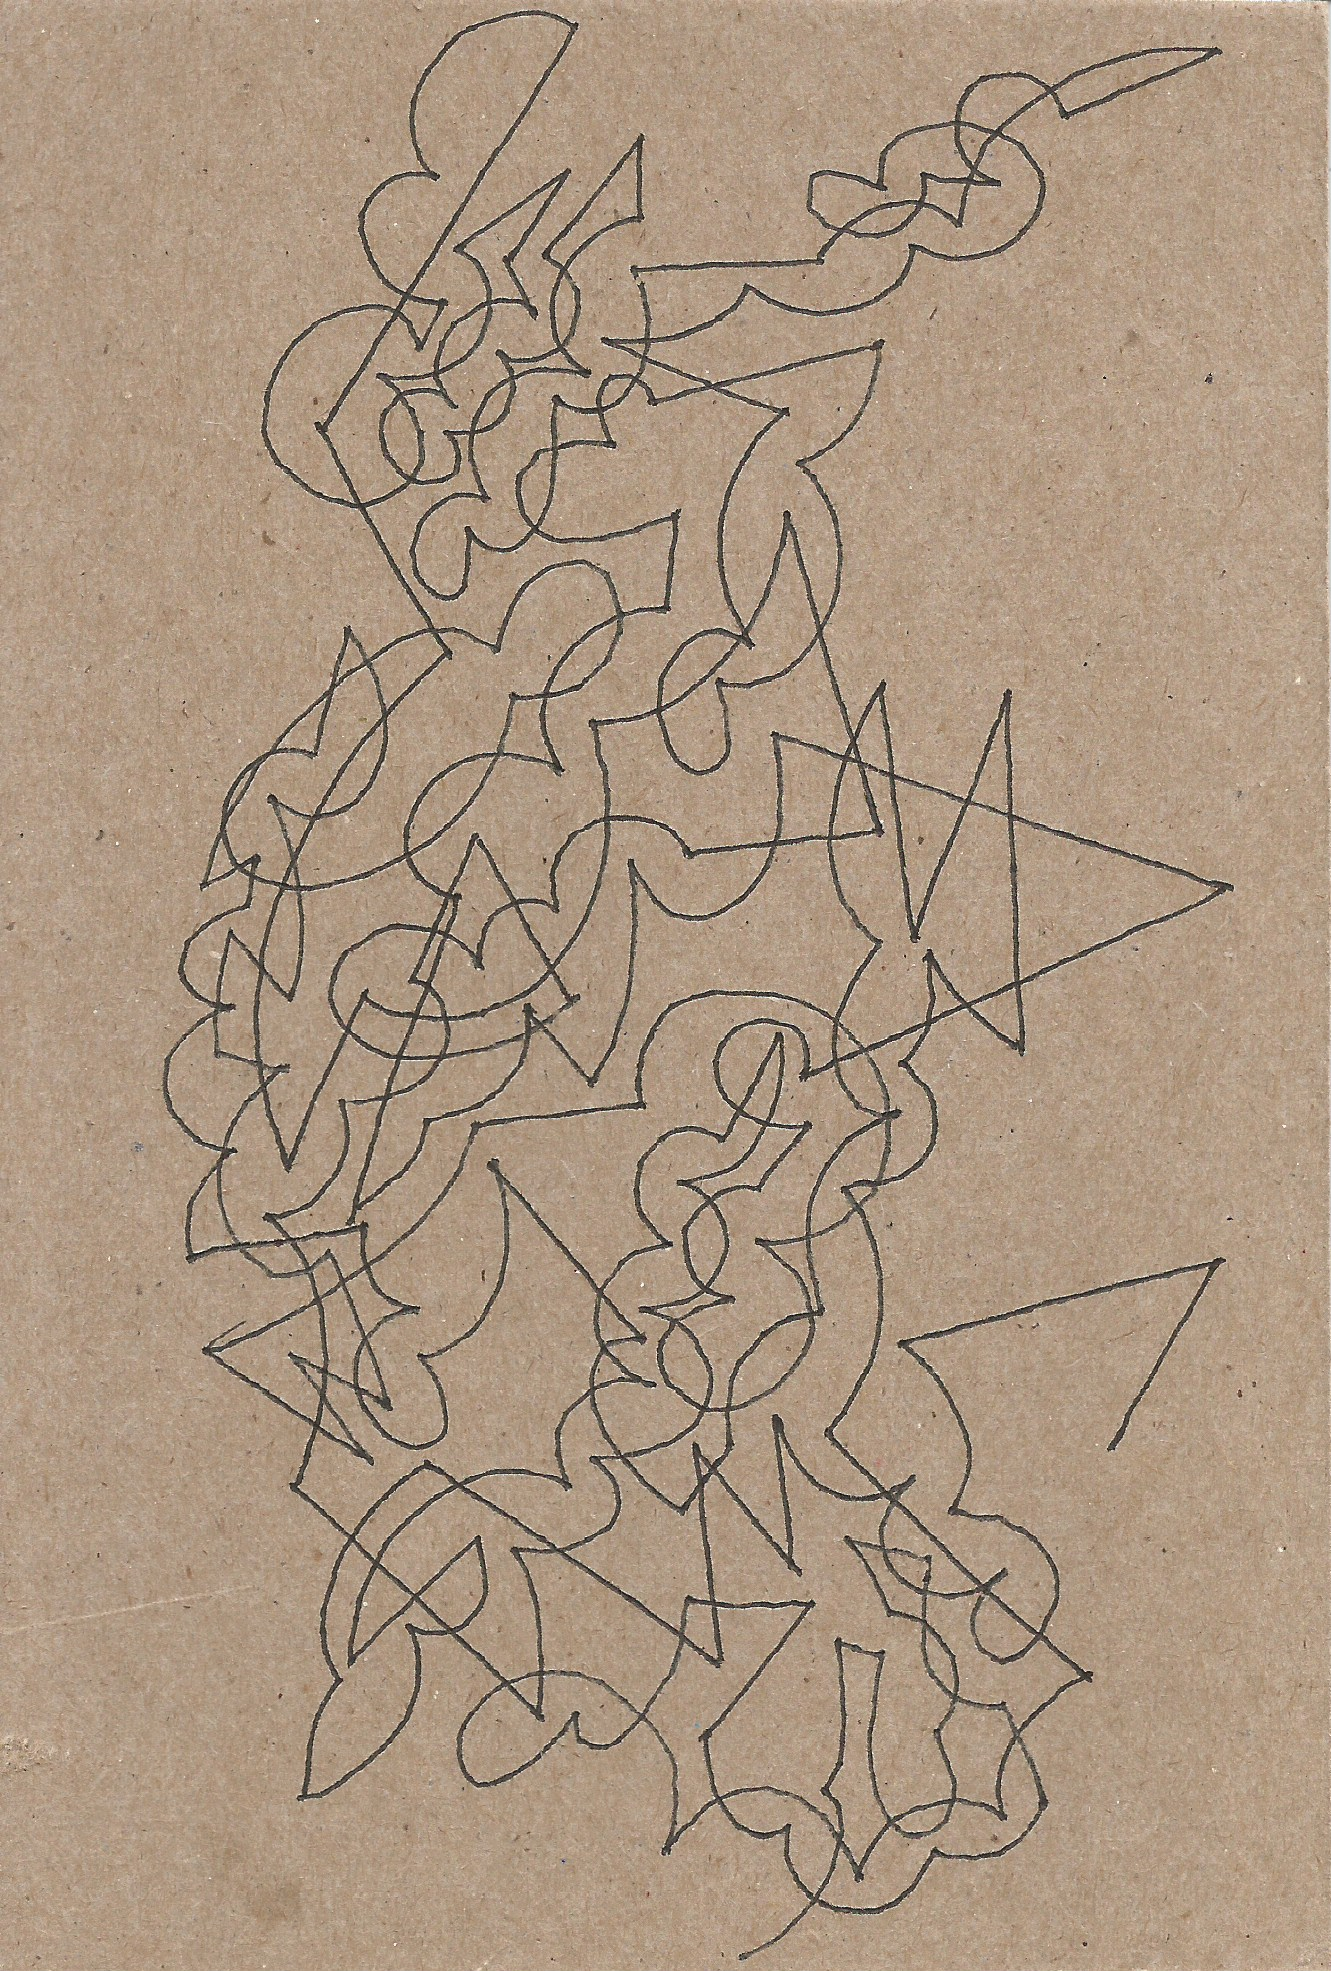 Miscellaneous Drawings #13 (Untitled) 2015 - Front.jpeg